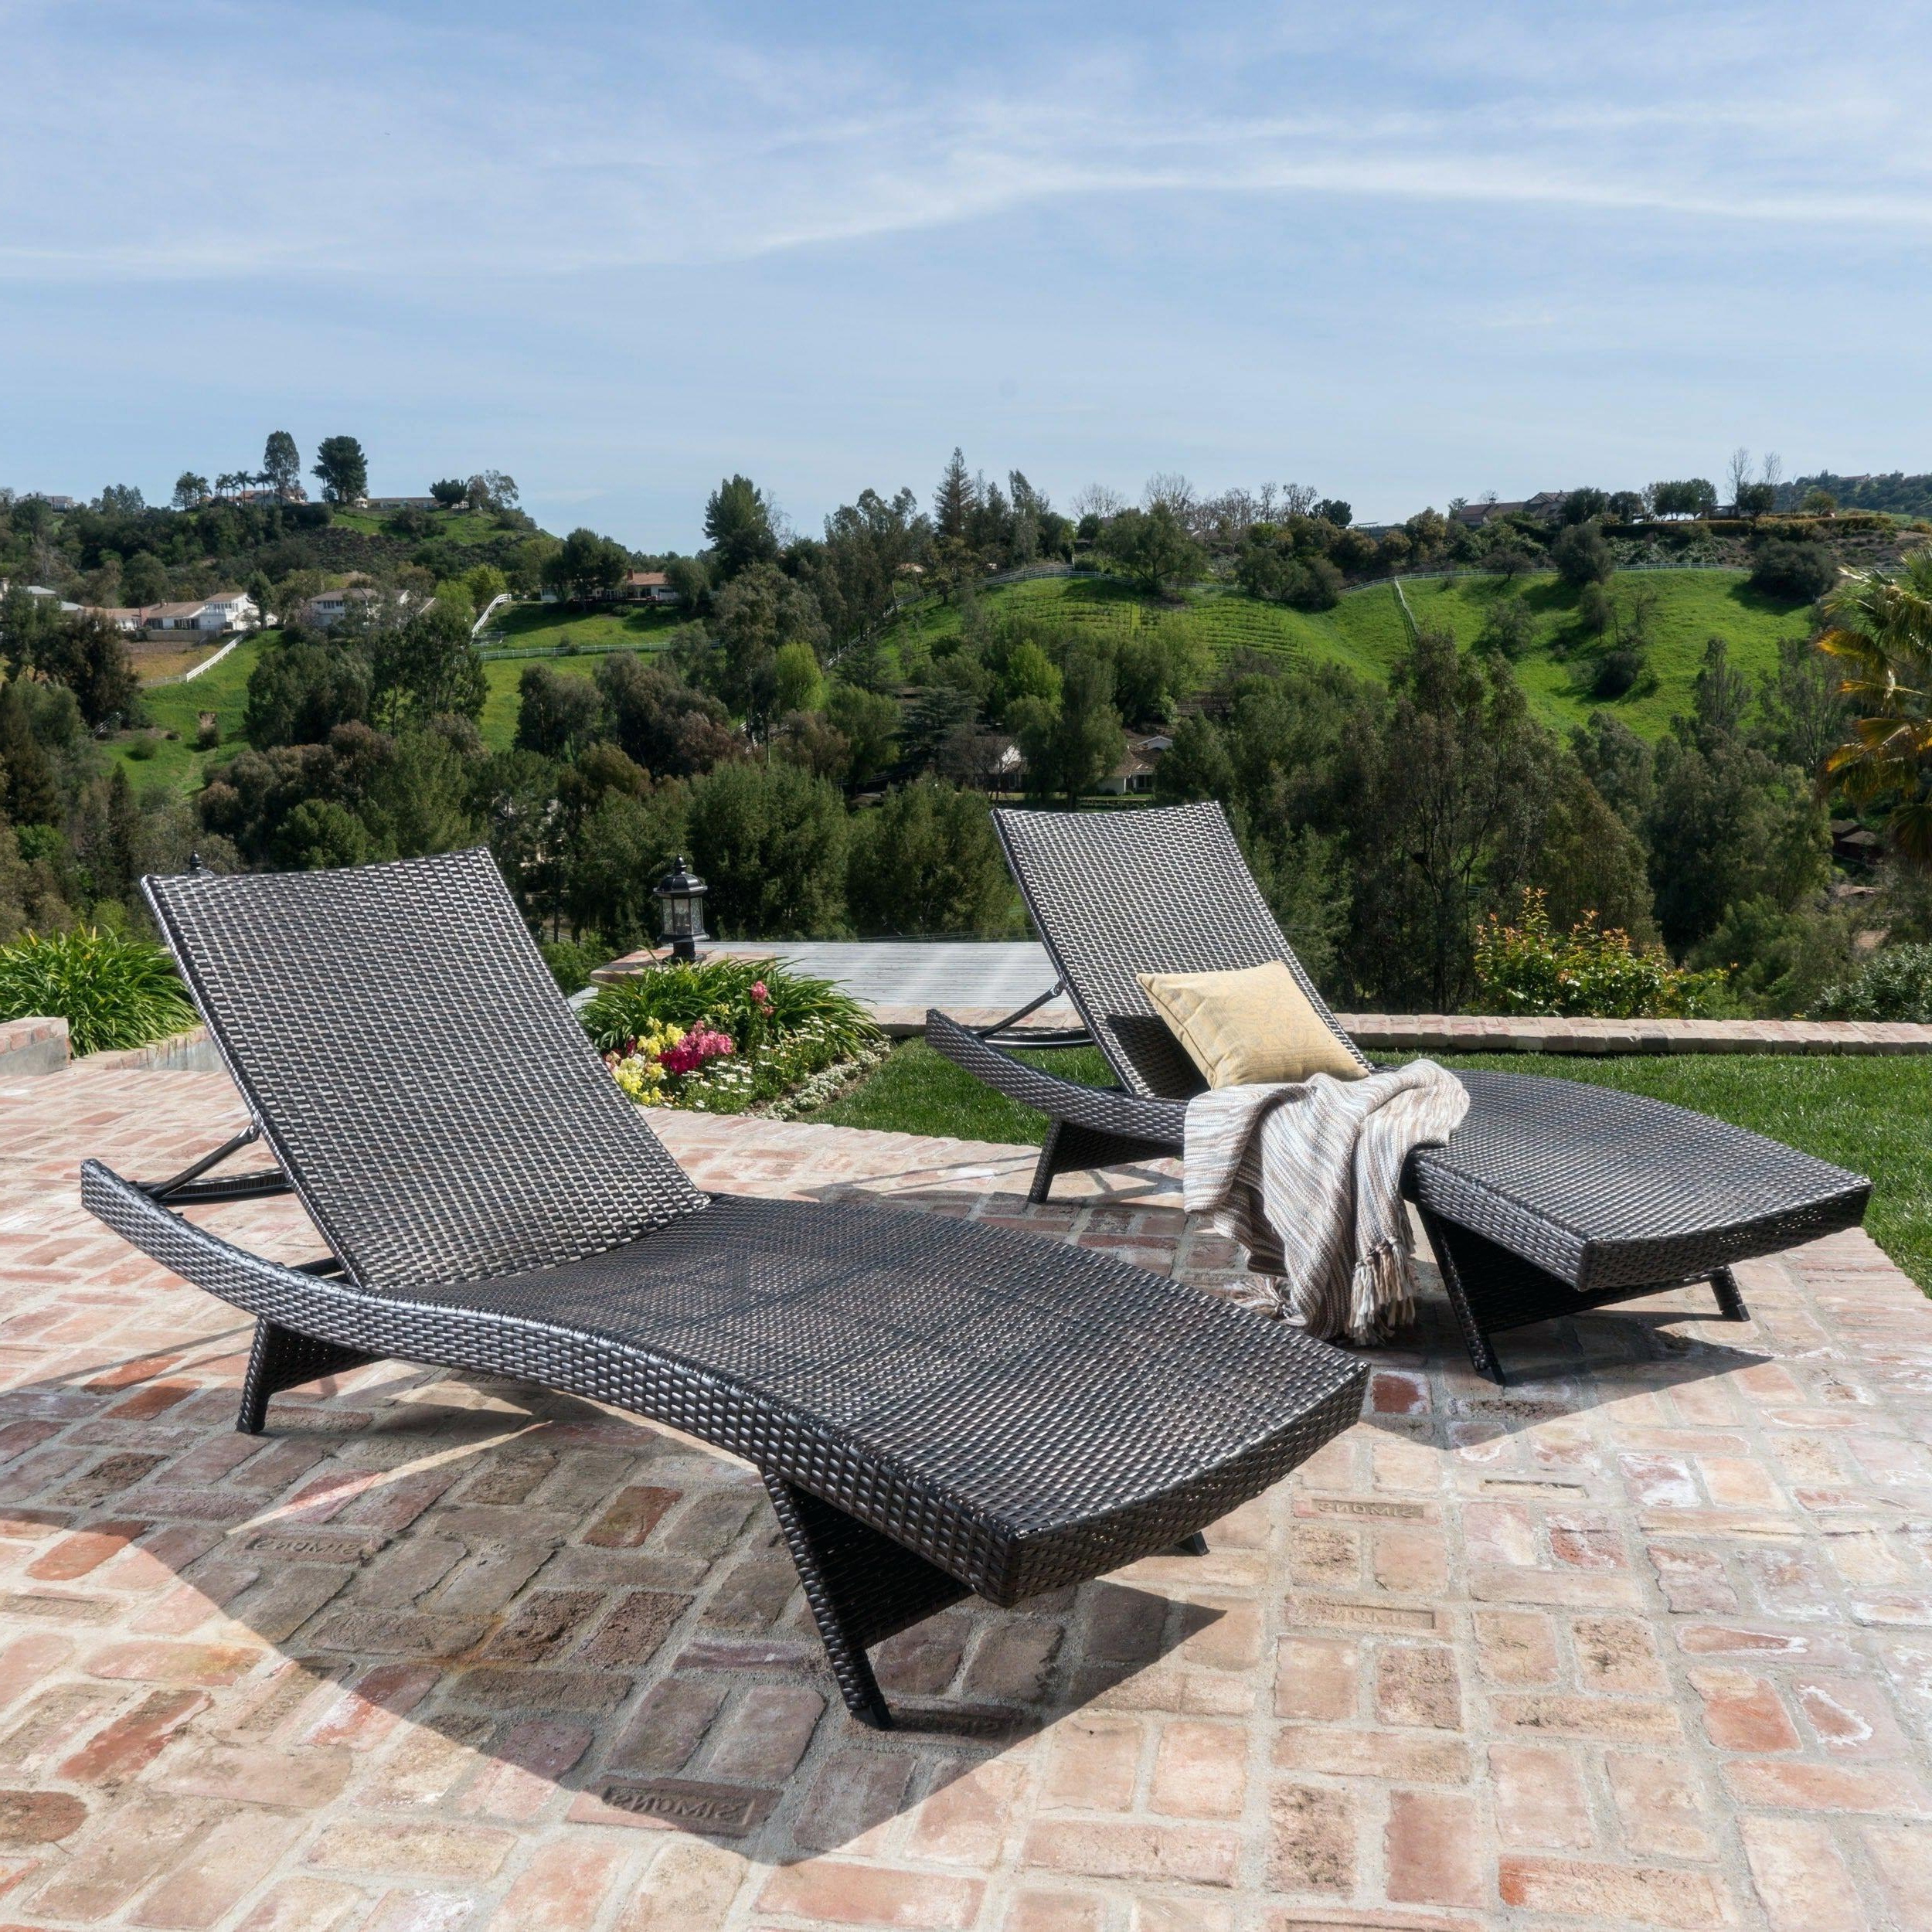 Envisage Chaise Outdoor Patio Wicker Rattan Lounge Chairs With Regard To 2020 Chairs Shops In Abu Dhabi Furniture Dubai Sheikh Zayed Road (View 6 of 25)